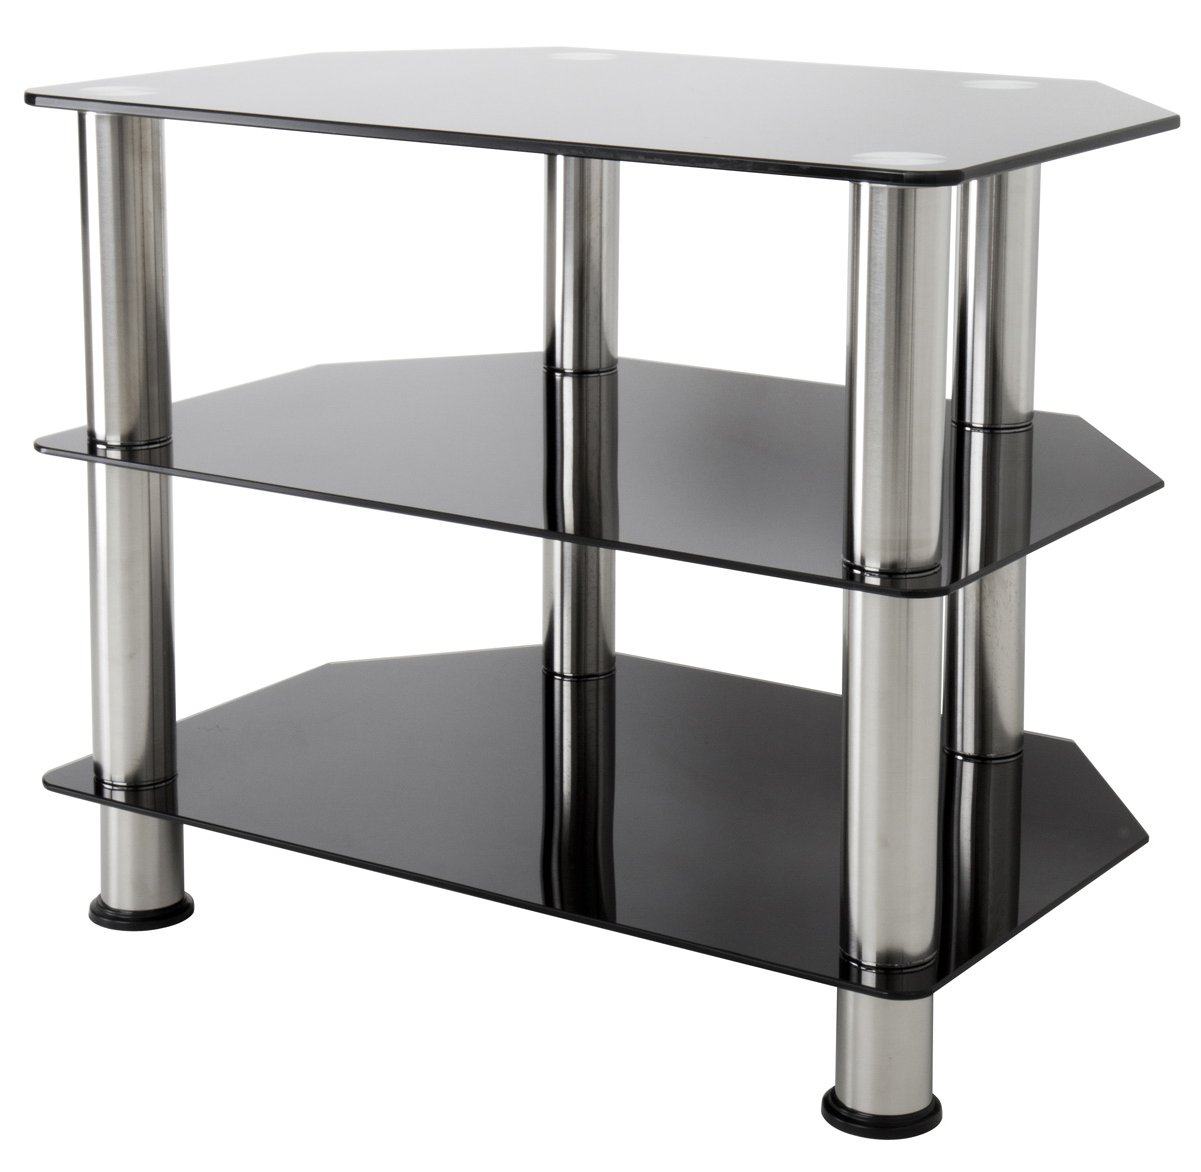 Avf Sdc600 Tv Stands # Model Des Meuble D'Ecran Plasma